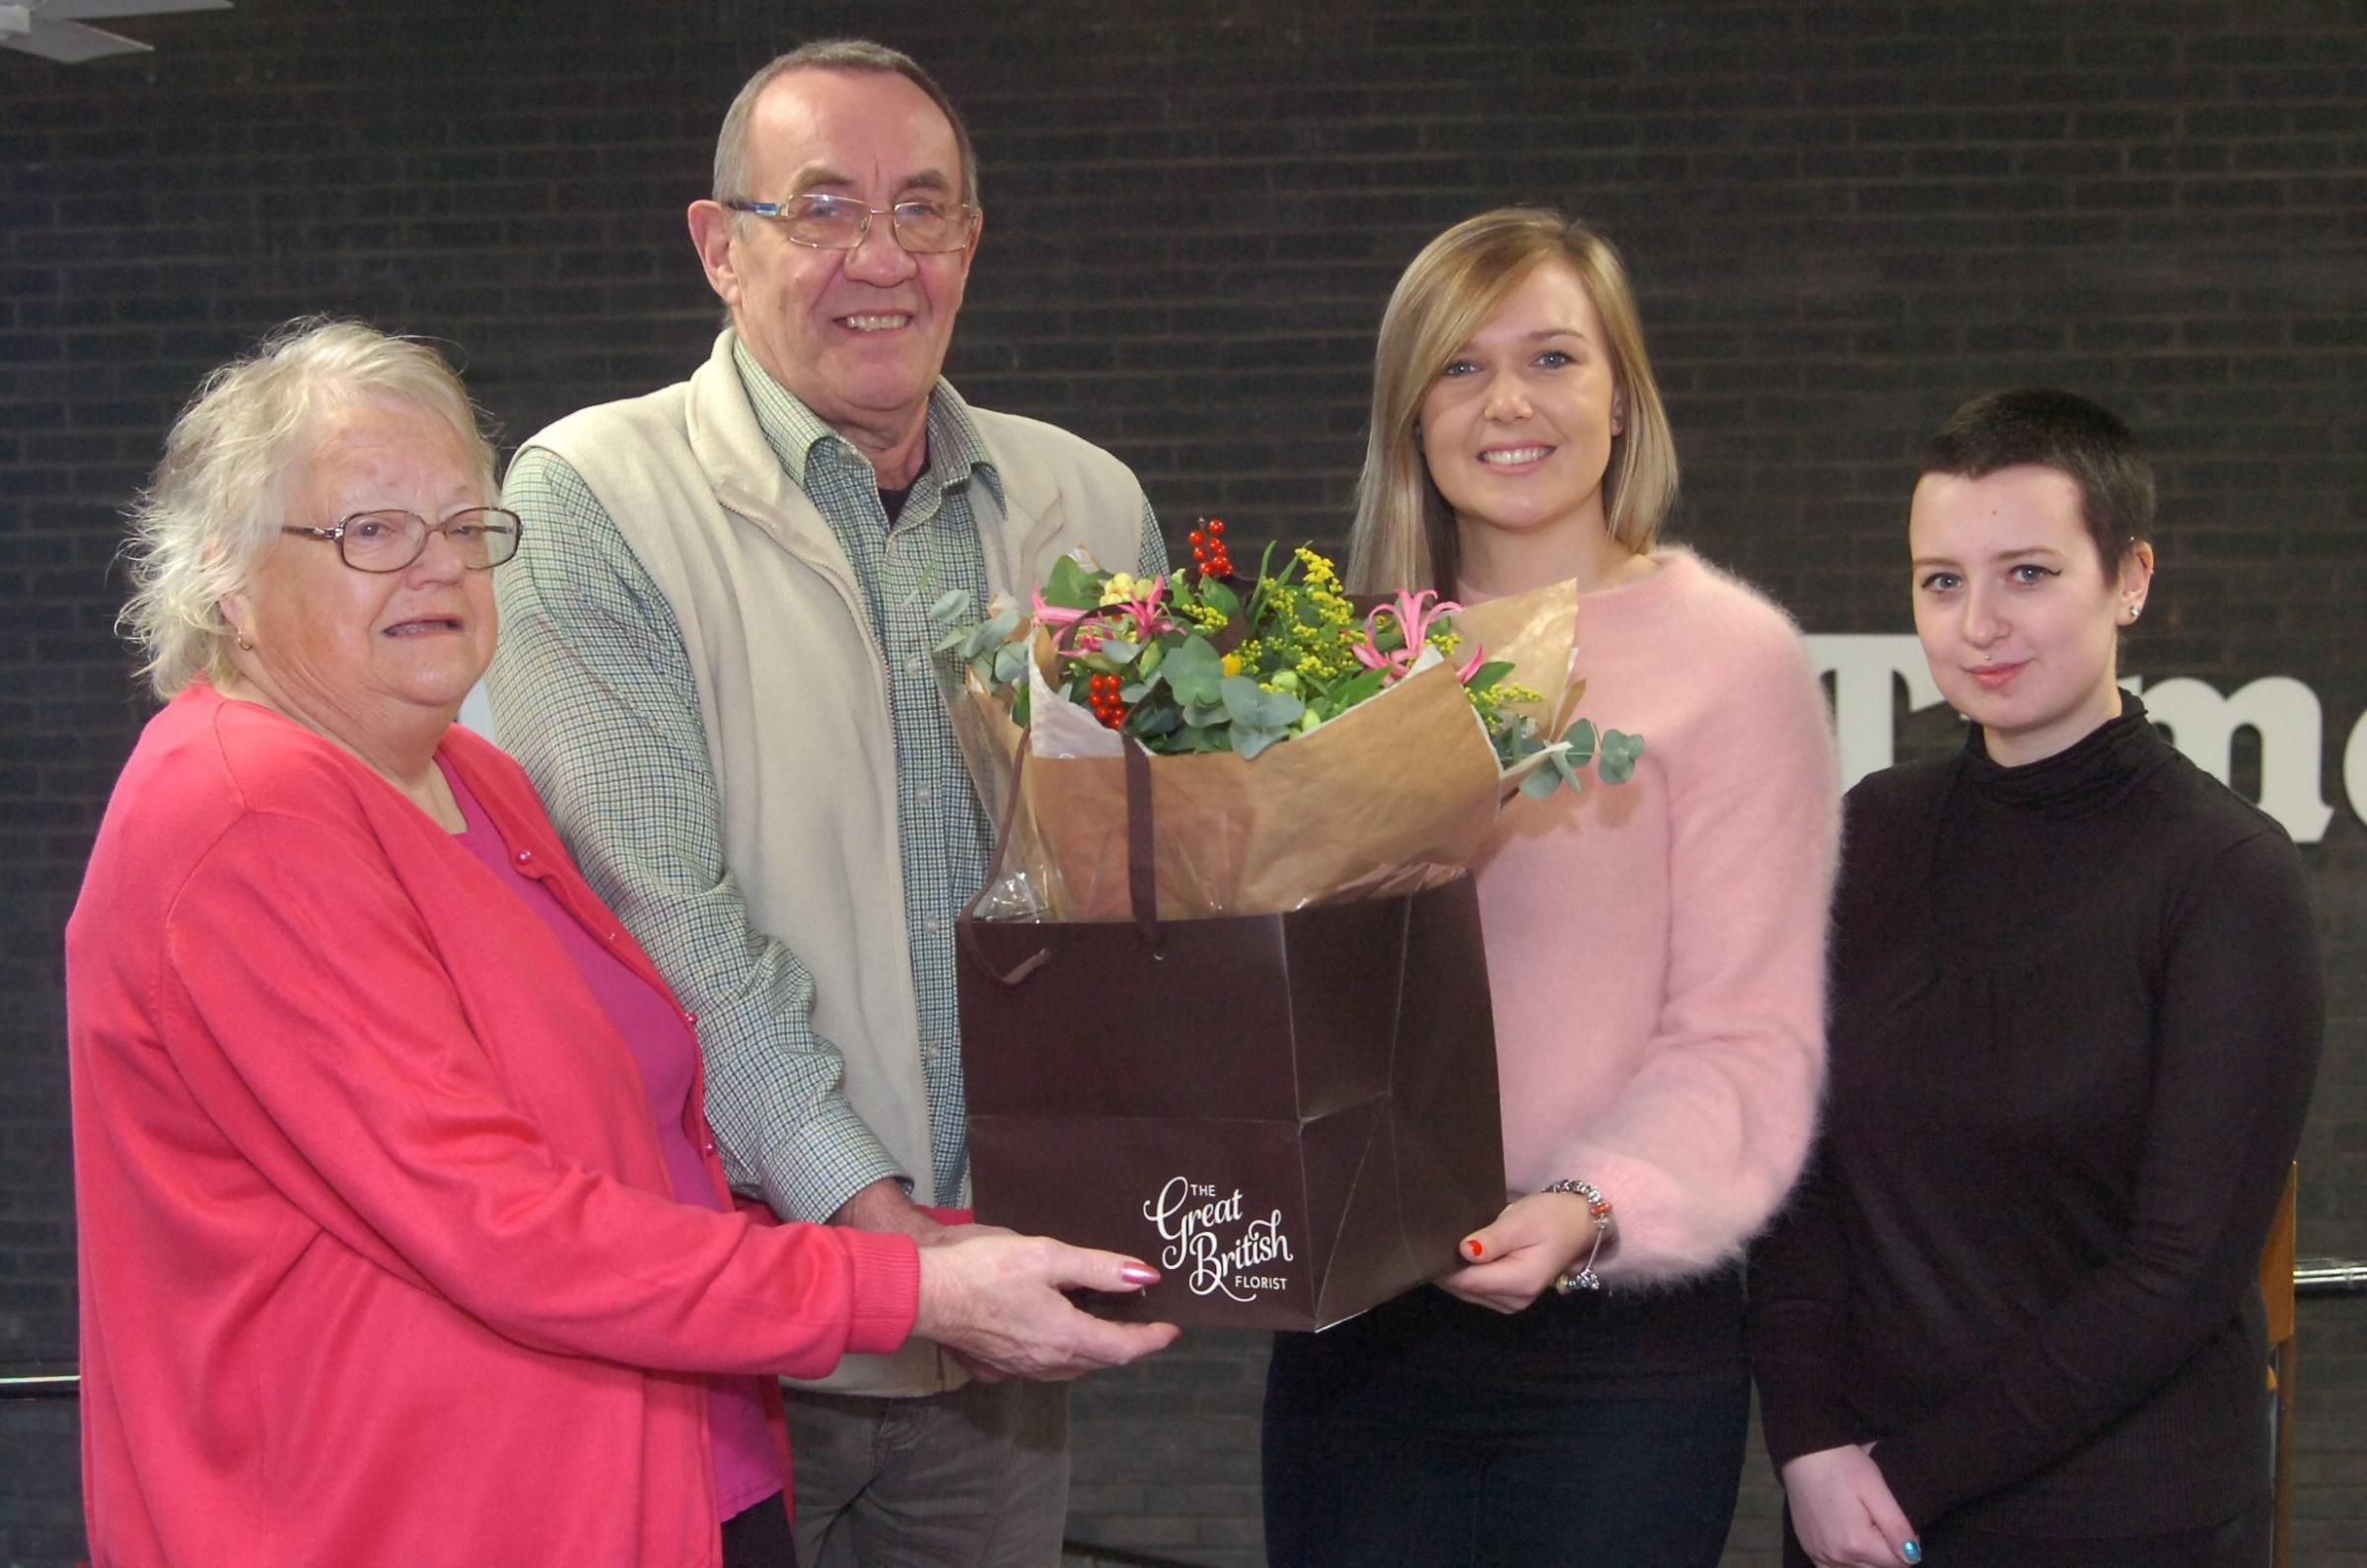 Ros and Ray Sykes receive their Herefordshire Hero bouquet from Izzy Winney of the Great British Florist and Hereford Times reporter Lydia Johnson. Picture by James Maggs.